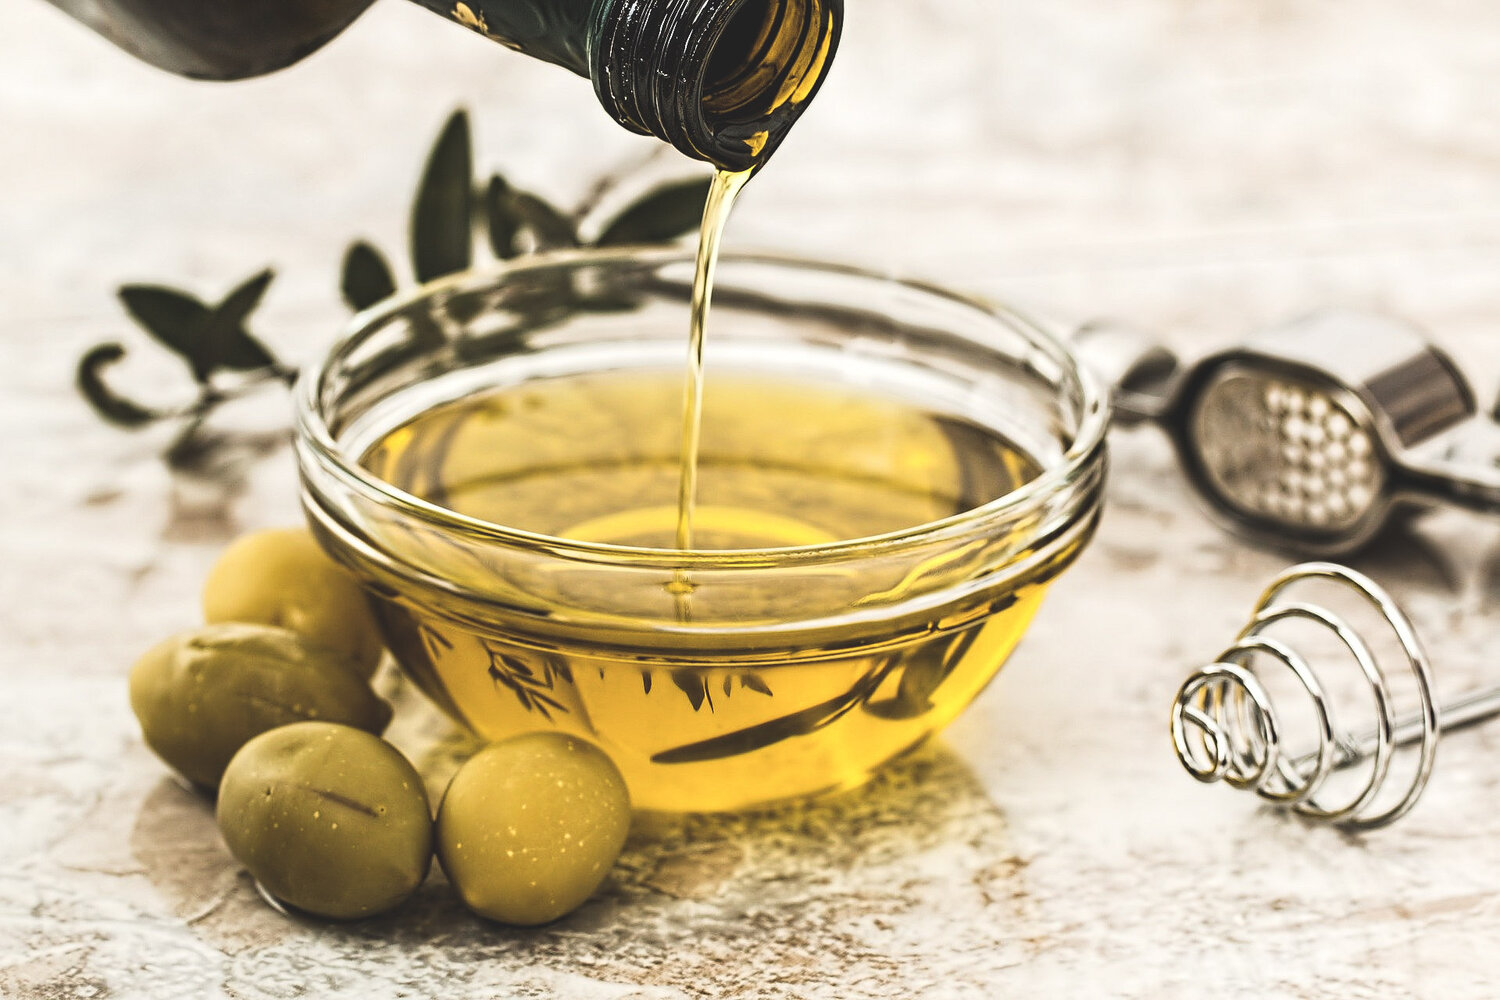 High quality olive oil - rich in reservatrol